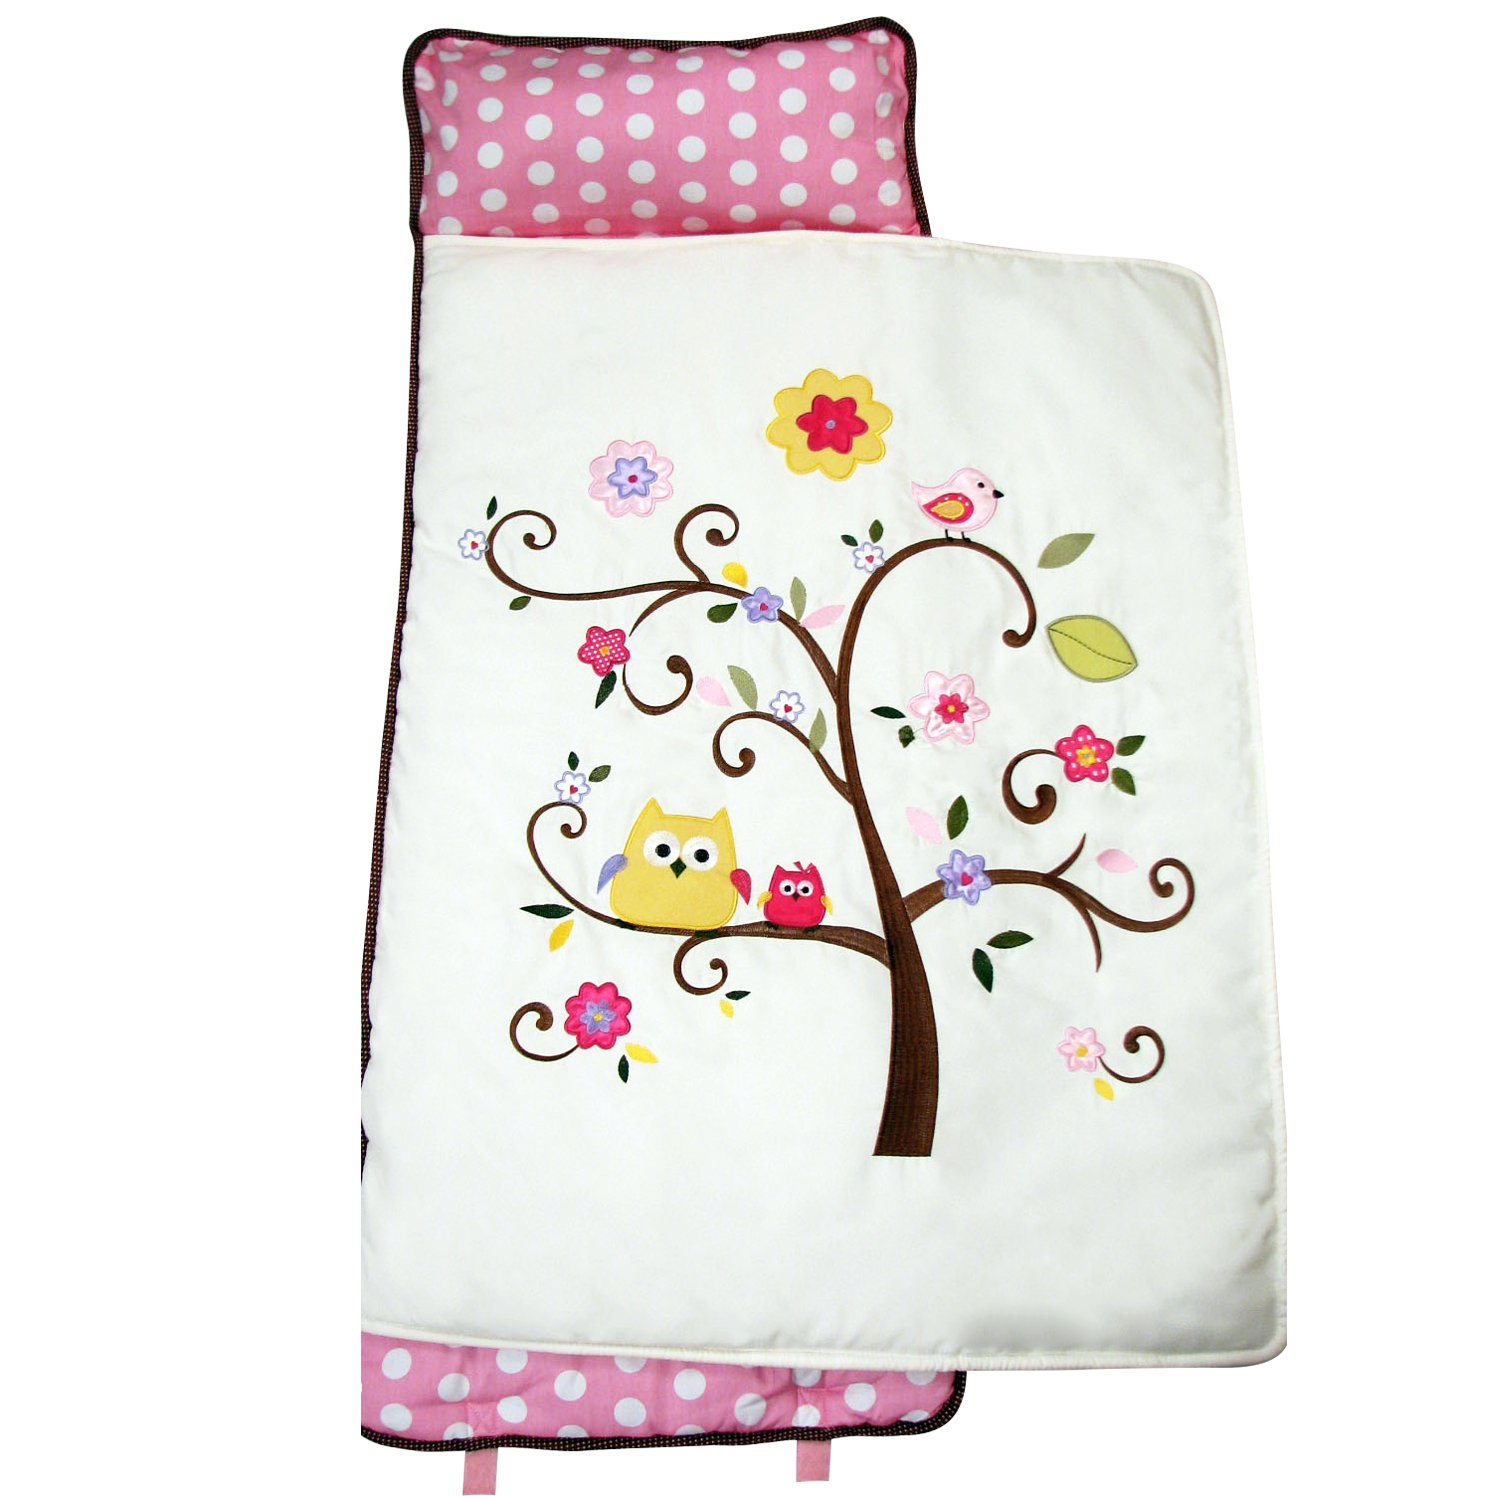 SoHo Nap Mat , Pink Cherry Blossom (All Hand Embroidery)